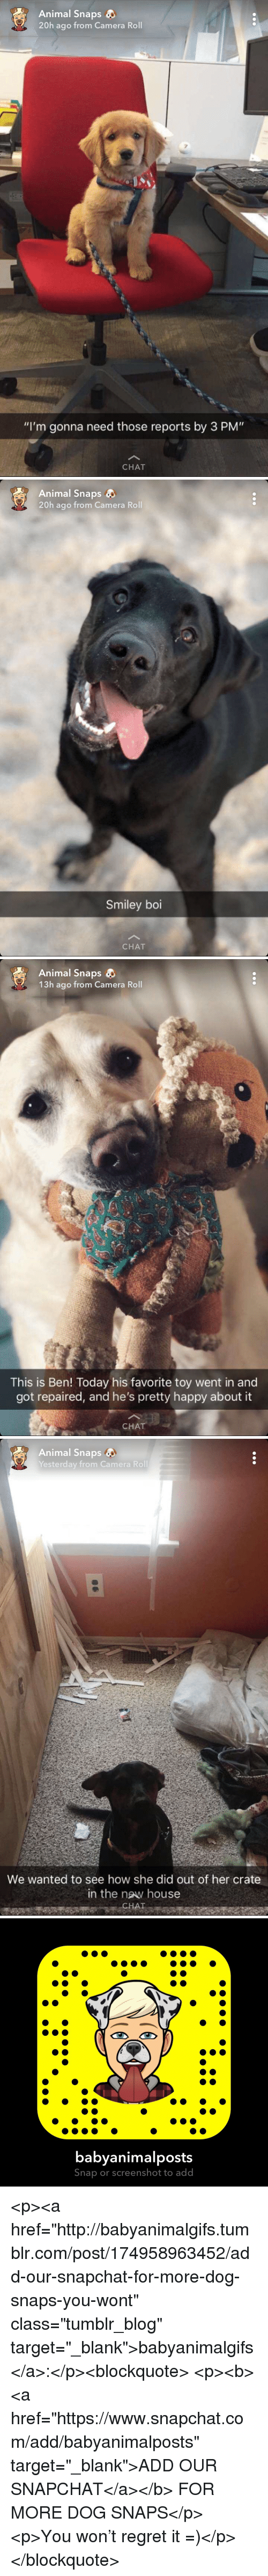 """Regret, Snapchat, and Target: Animal Snaps  20h ago from Camera Roll  """"I'm gonna need those reports by 3 PM""""  CHAT   Animal Snaps  20h ago from Camera Roll  Smiley boi  CHAT   Animal Snaps  13h ago from Camera Roll  This is Ben! Today his favorite toy went in and  got repaired, and he's pretty happy about it  CHAT   Animal Snaps  Yesterday from Camera Roll  We wanted to see how she did out of her crate  in the new house  AT   babyanimalposts  Snap or screenshot to add <p><a href=""""http://babyanimalgifs.tumblr.com/post/174958963452/add-our-snapchat-for-more-dog-snaps-you-wont"""" class=""""tumblr_blog"""" target=""""_blank"""">babyanimalgifs</a>:</p><blockquote> <p><b><a href=""""https://www.snapchat.com/add/babyanimalposts"""" target=""""_blank"""">ADD OUR SNAPCHAT</a></b> FOR MORE DOG SNAPS</p> <p>You won't regret it =)</p> </blockquote>"""